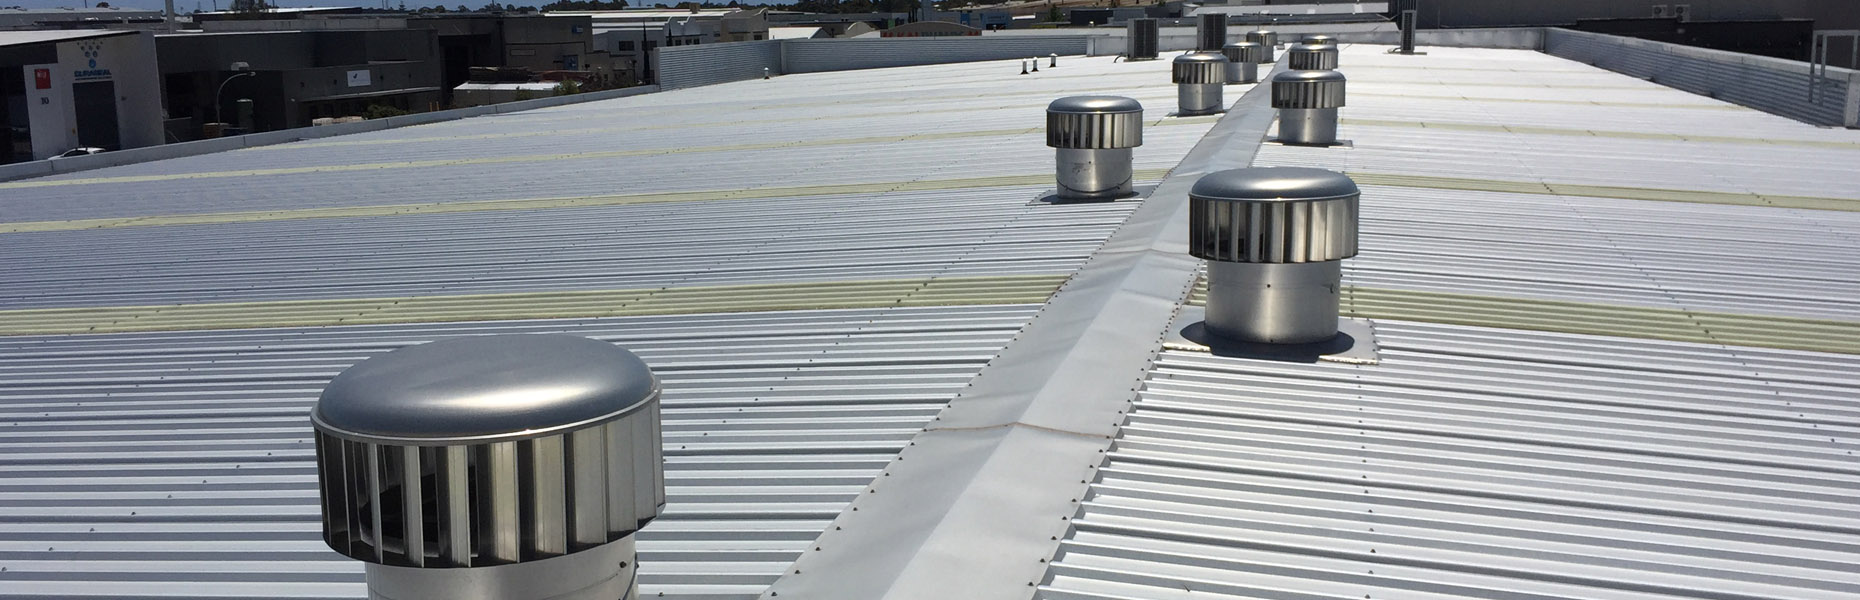 wind_driven_roof_ventilator_dubai_uae